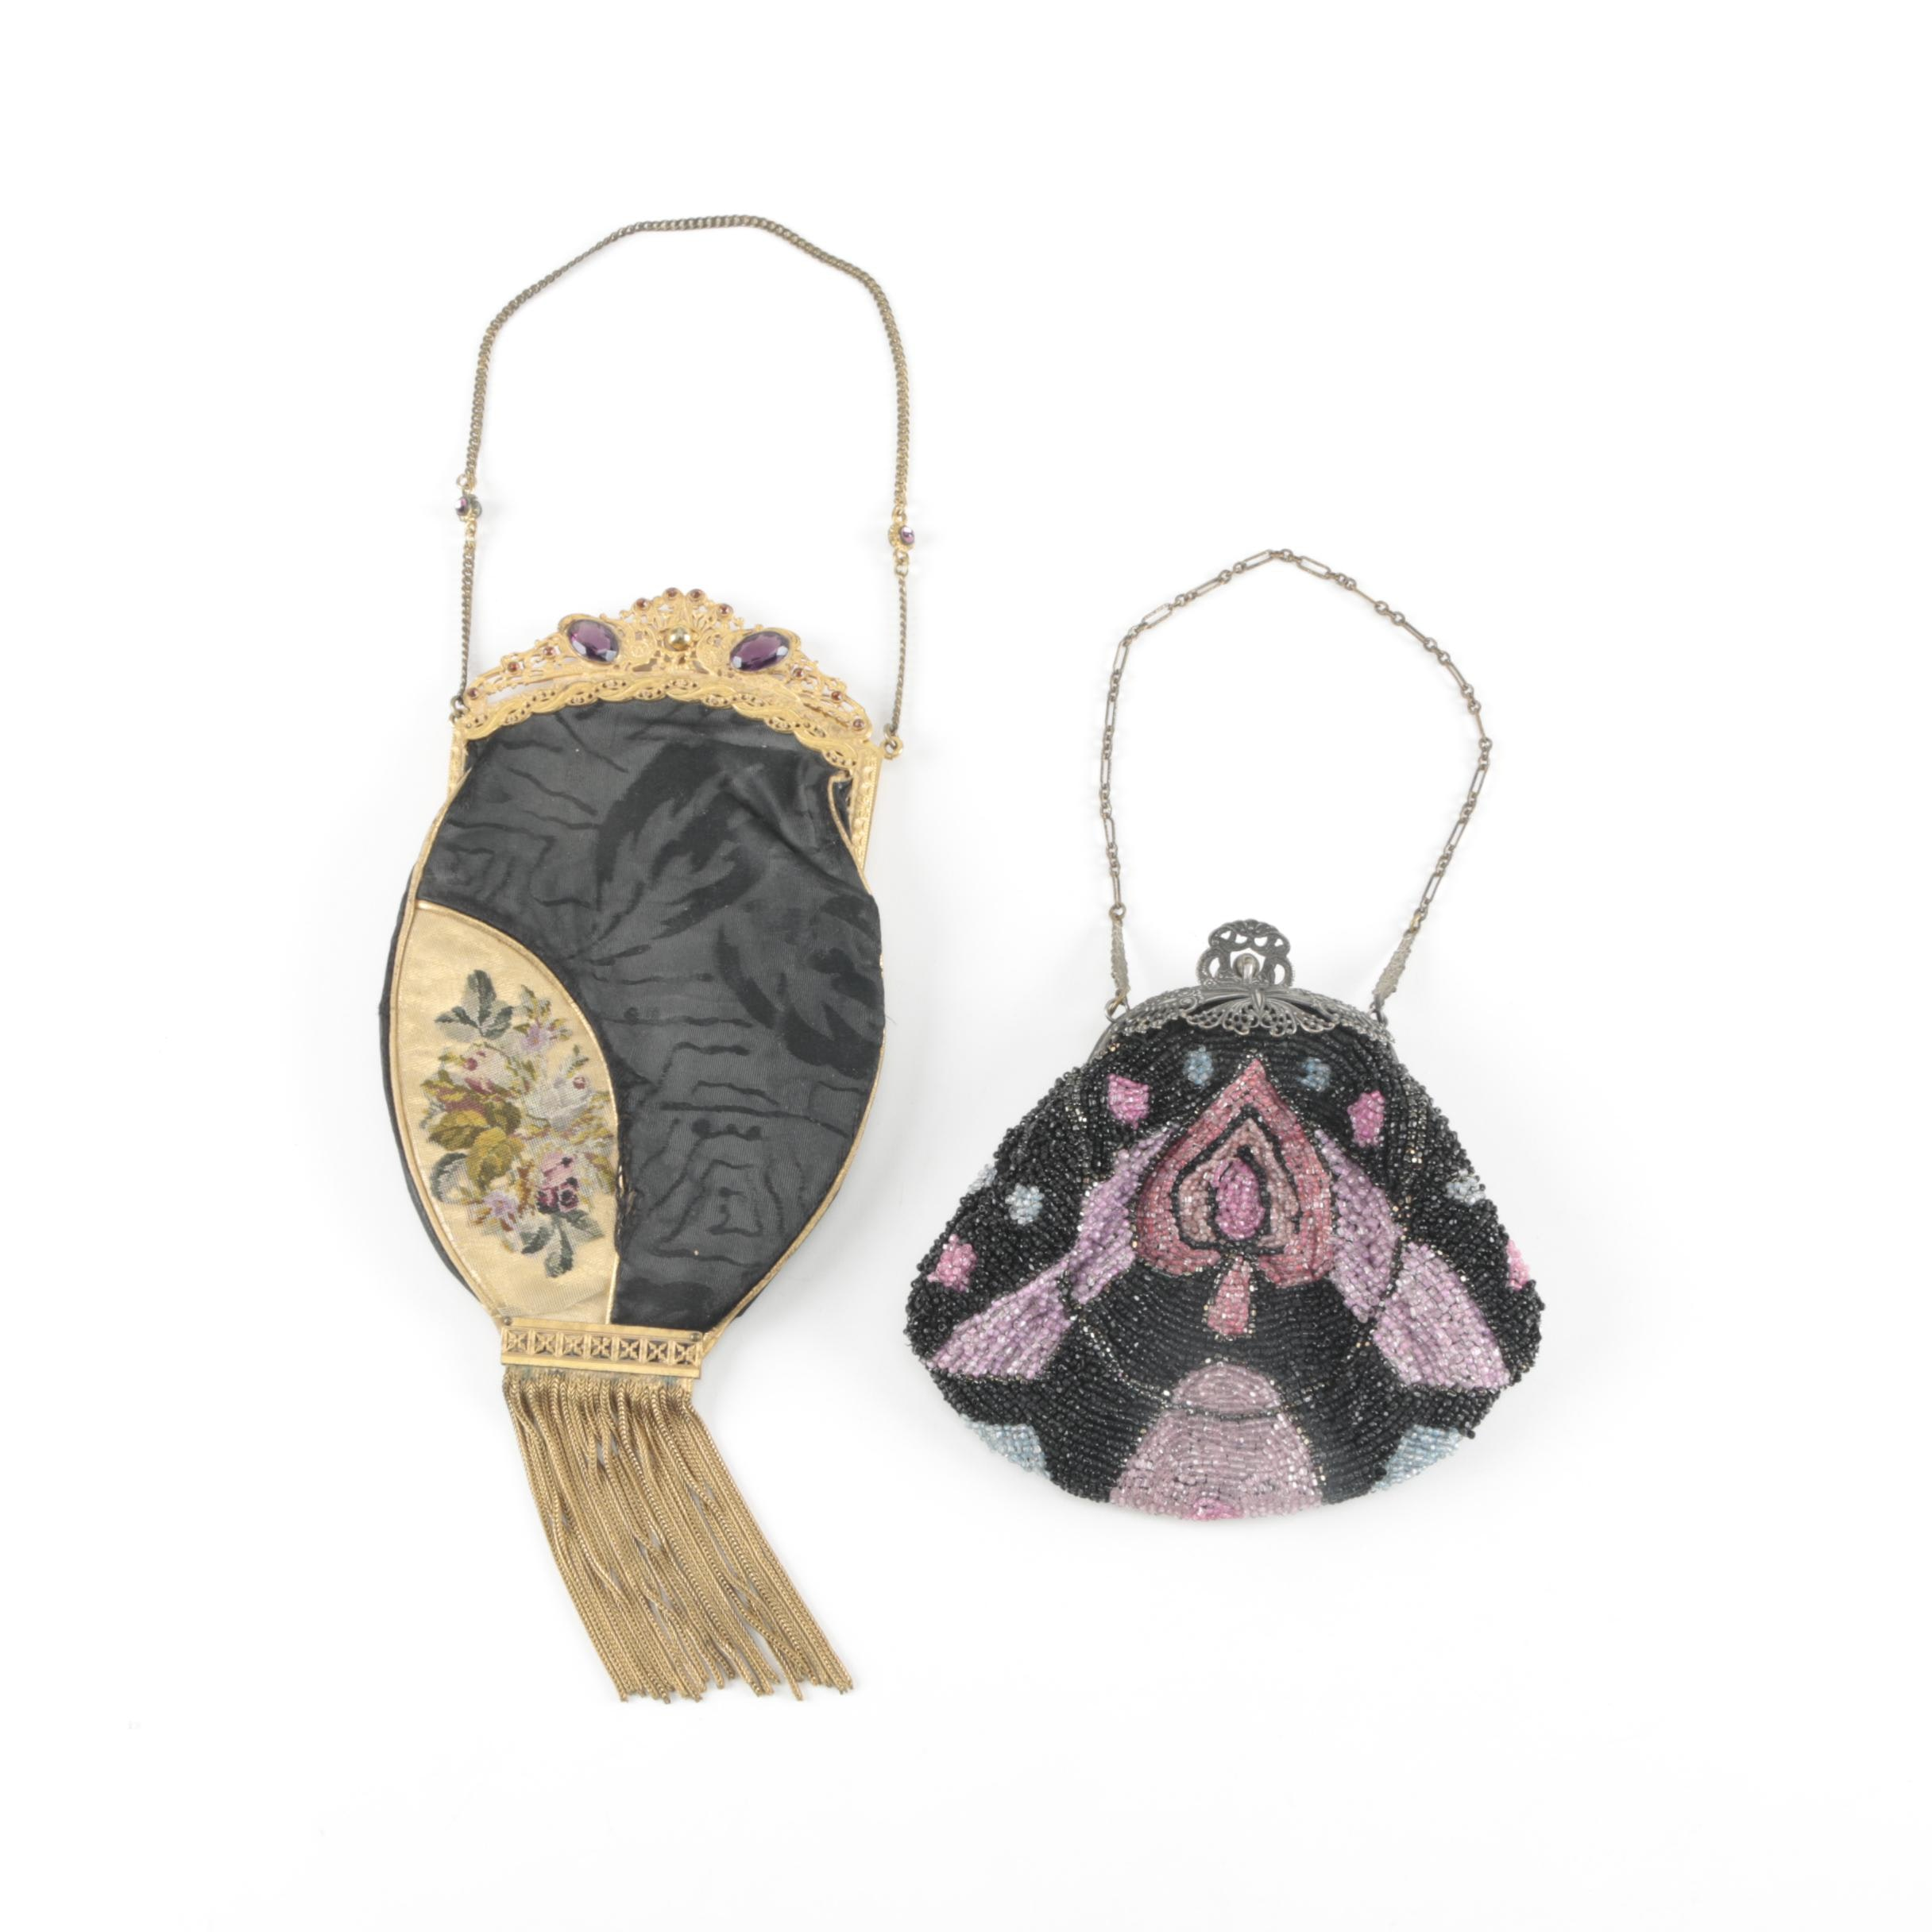 Vintage Beaded and Woven Evening Bags